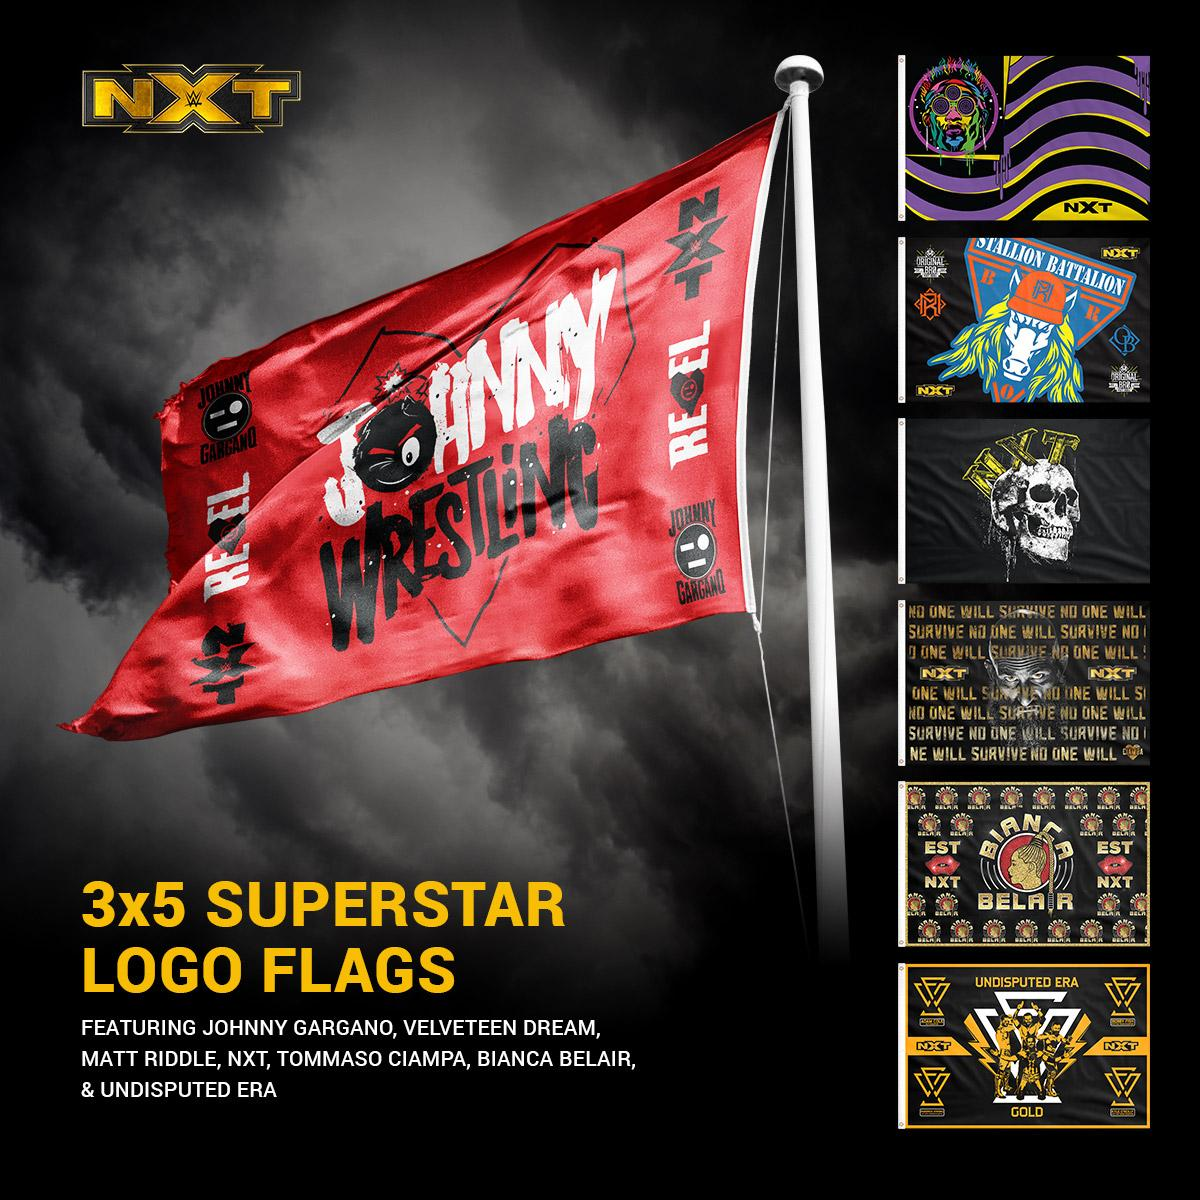 Proclaim to the world that you are #NXT with Superstar logo flags available now at #WWEShop! #WWE #WeAreNXT @WWENXT